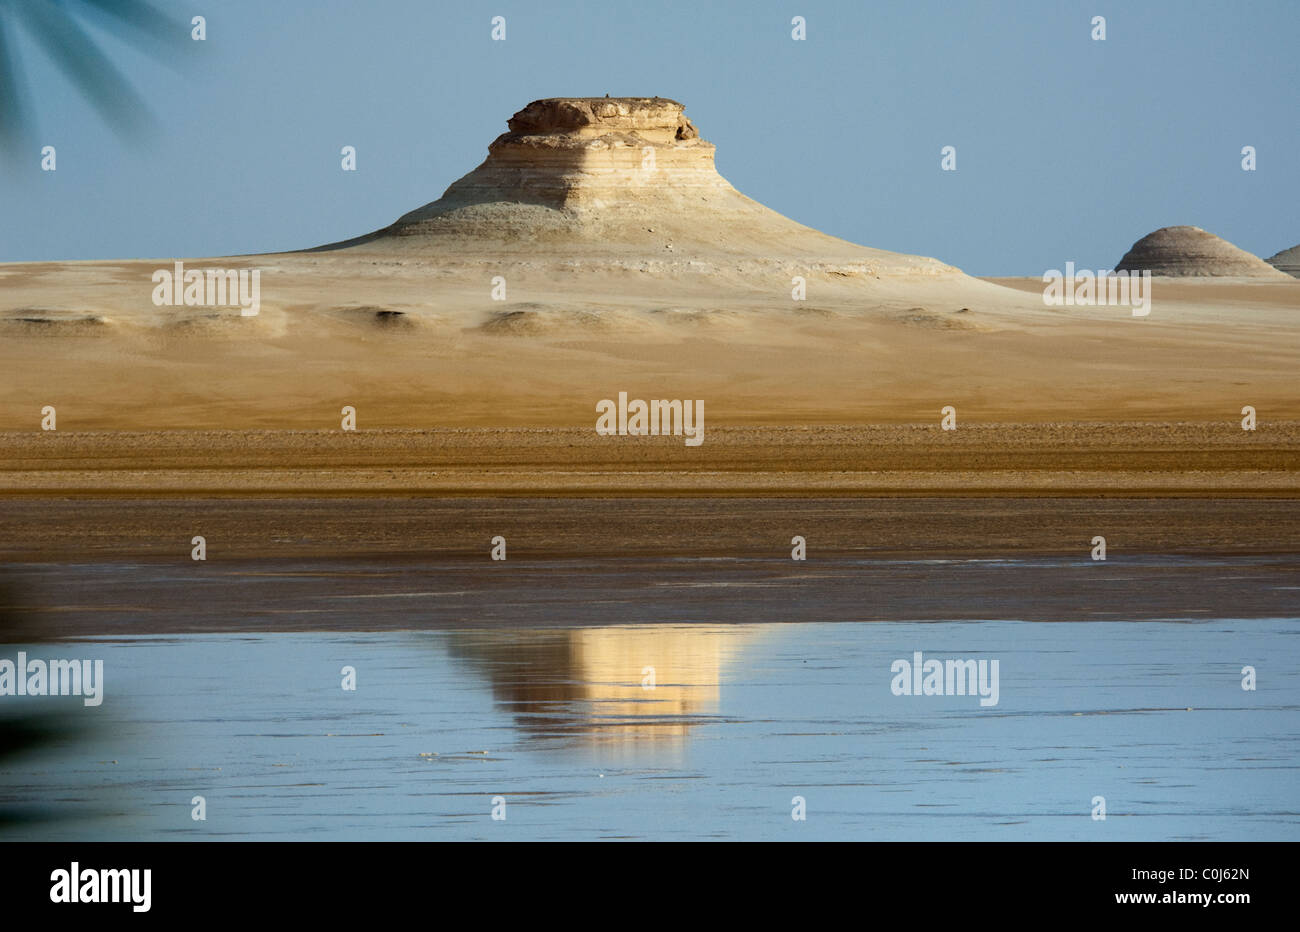 Lake Bahrain, Egypt - Stock Image